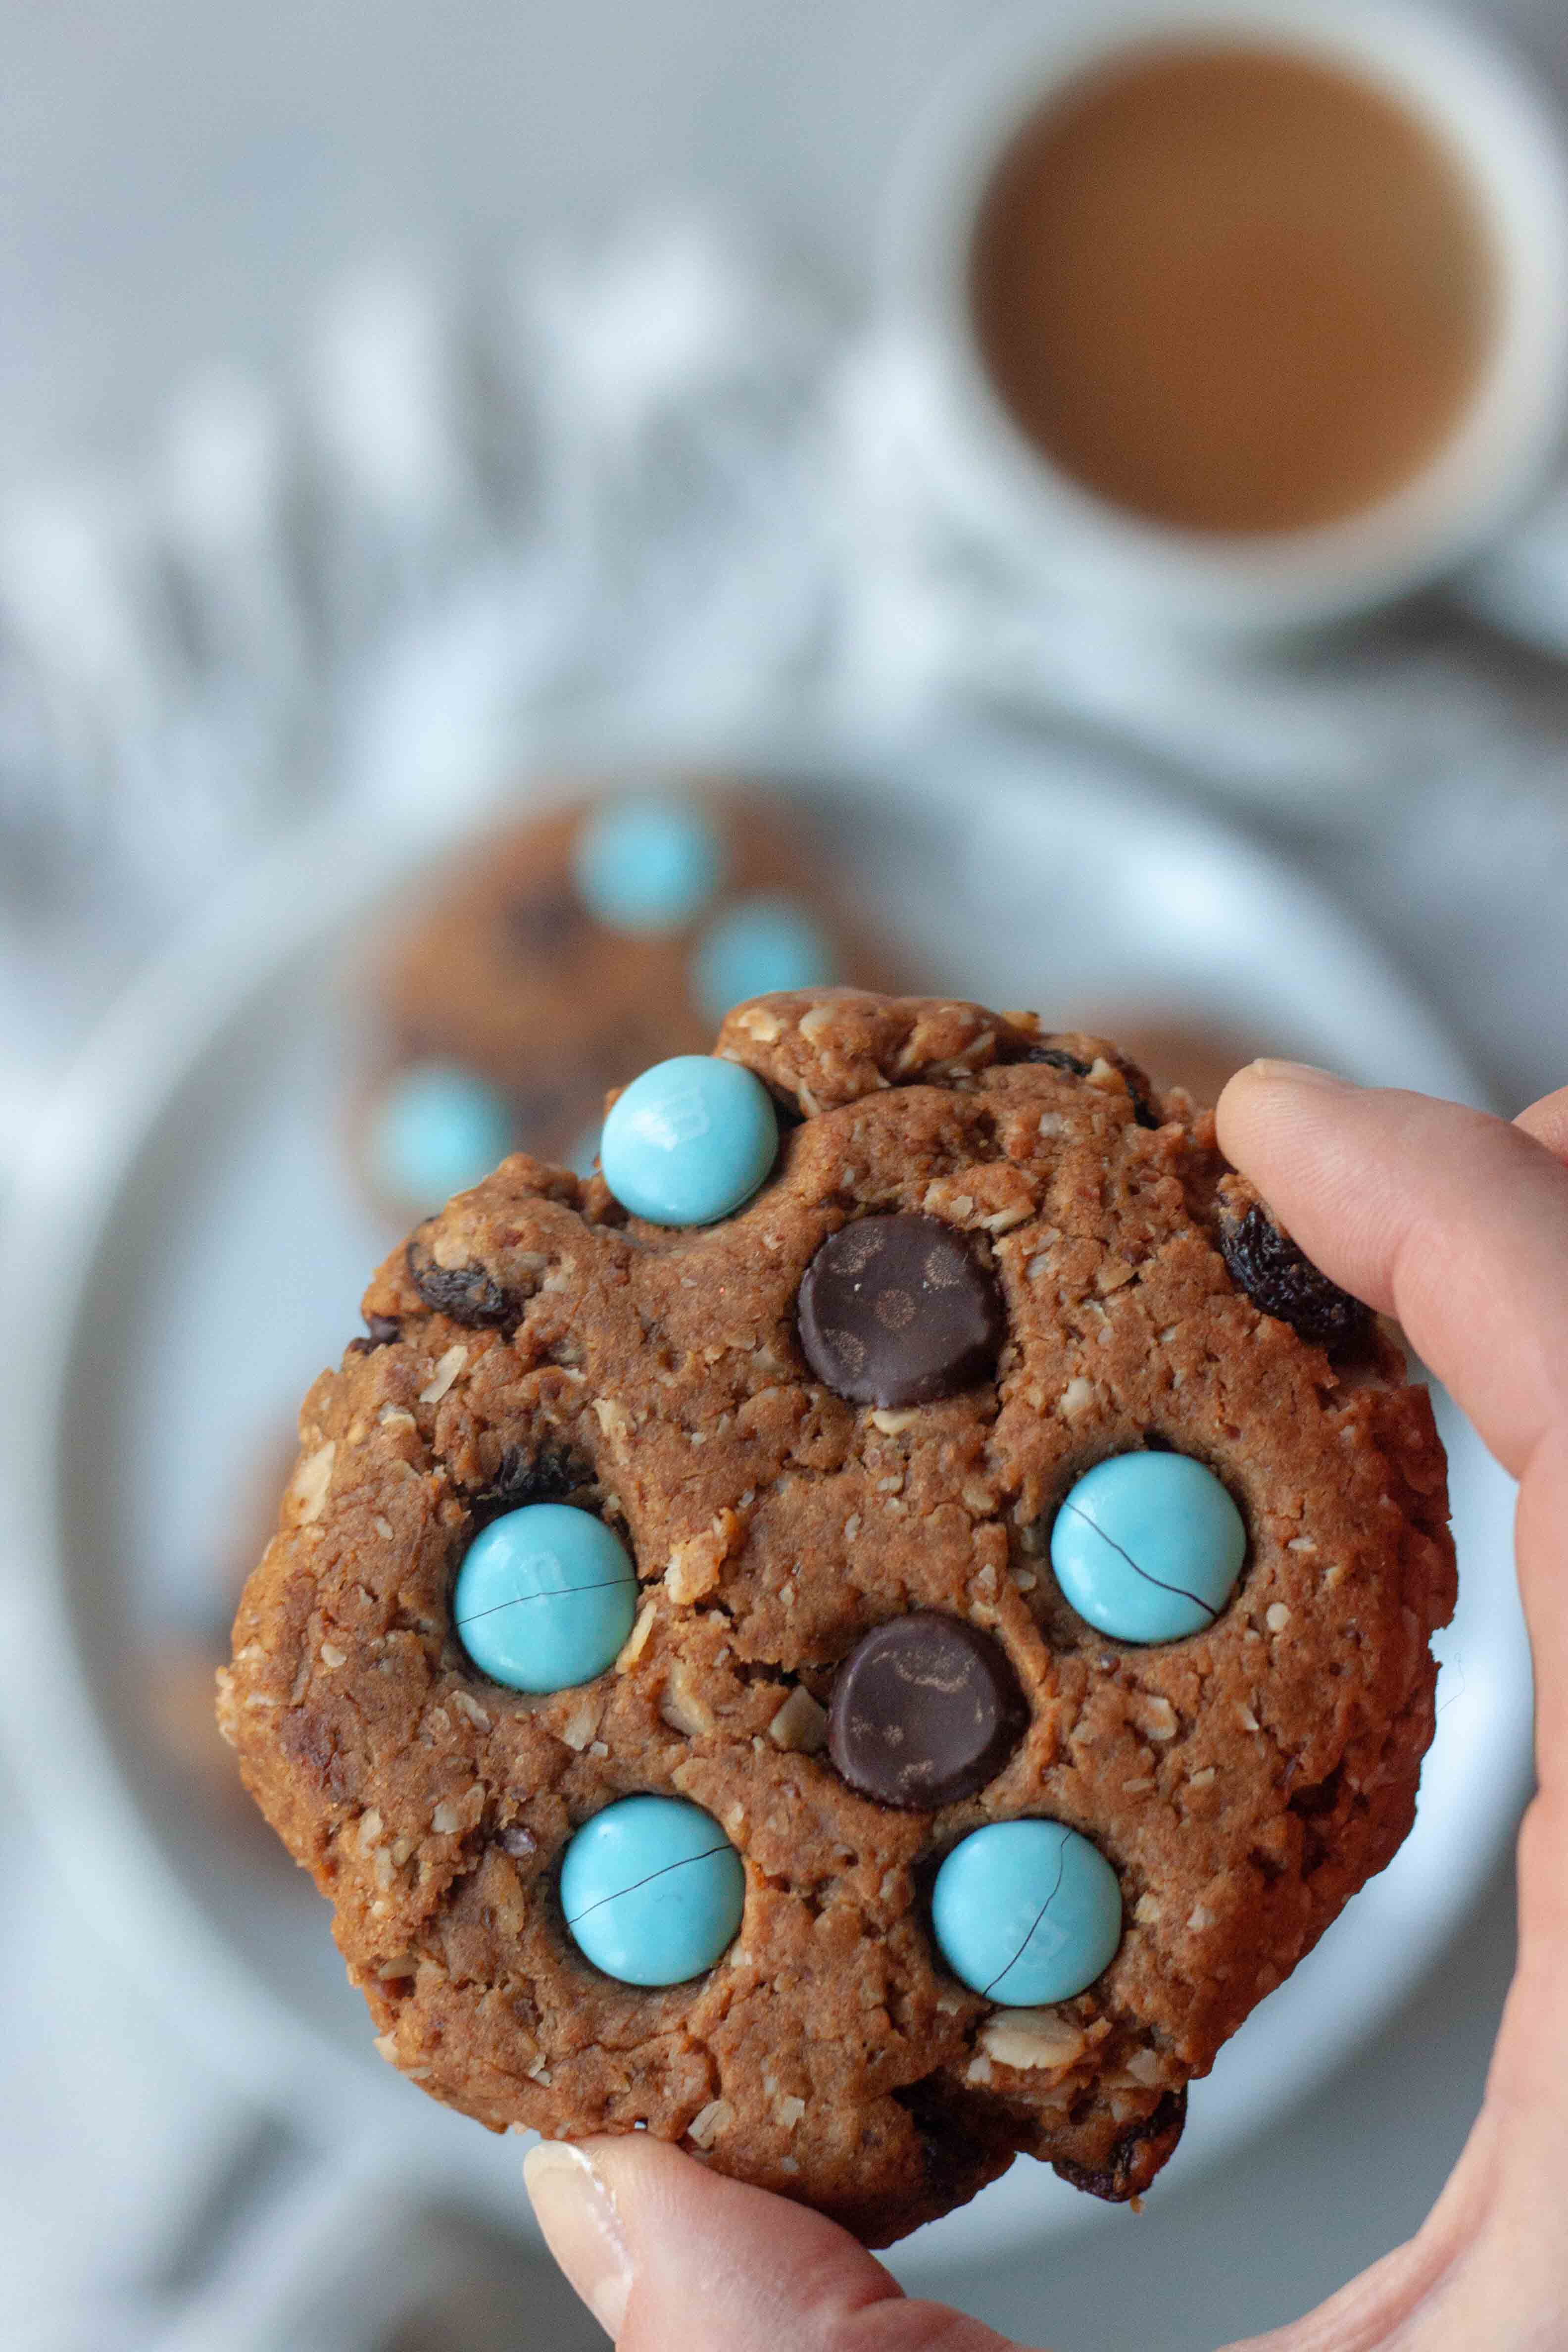 Holding a Milk Monster Cookie.